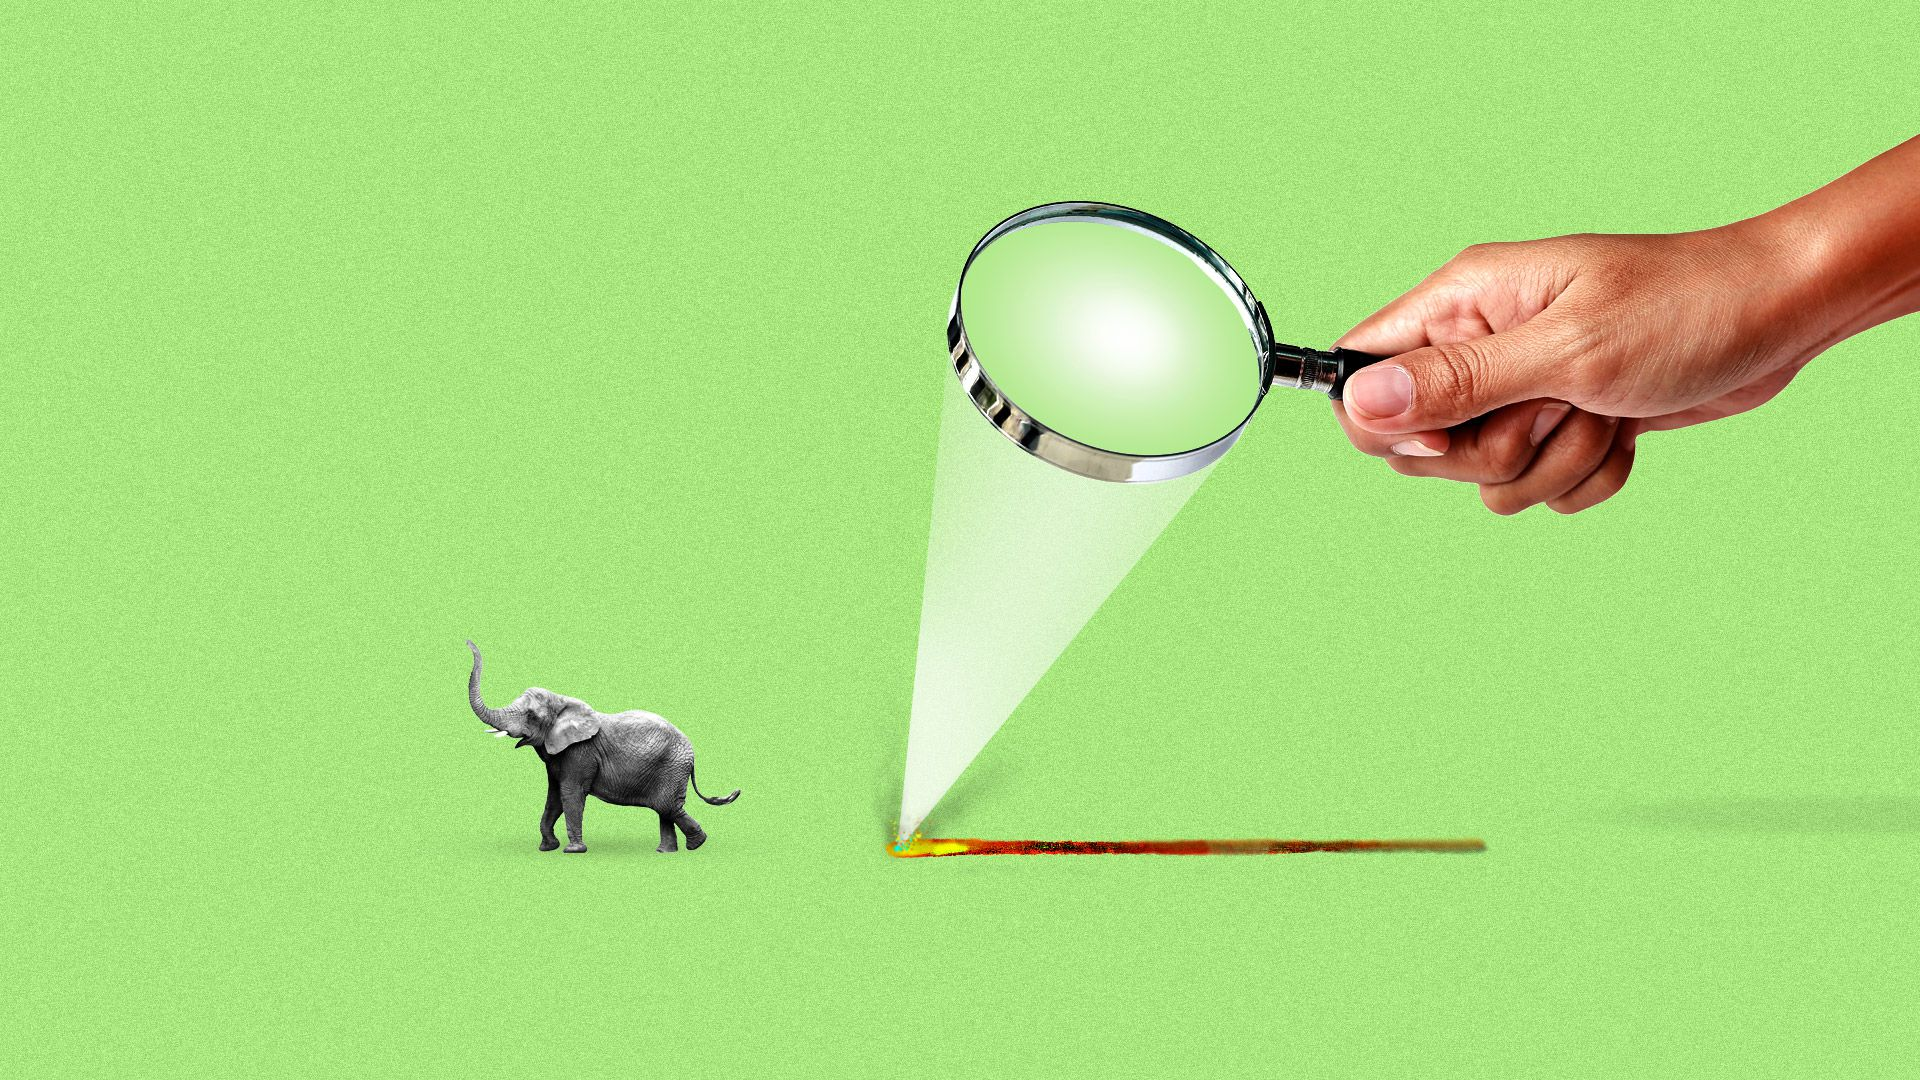 A tiny elephant runs away from a trail of fire caused by a man focusing the sun through a magnifying glass.